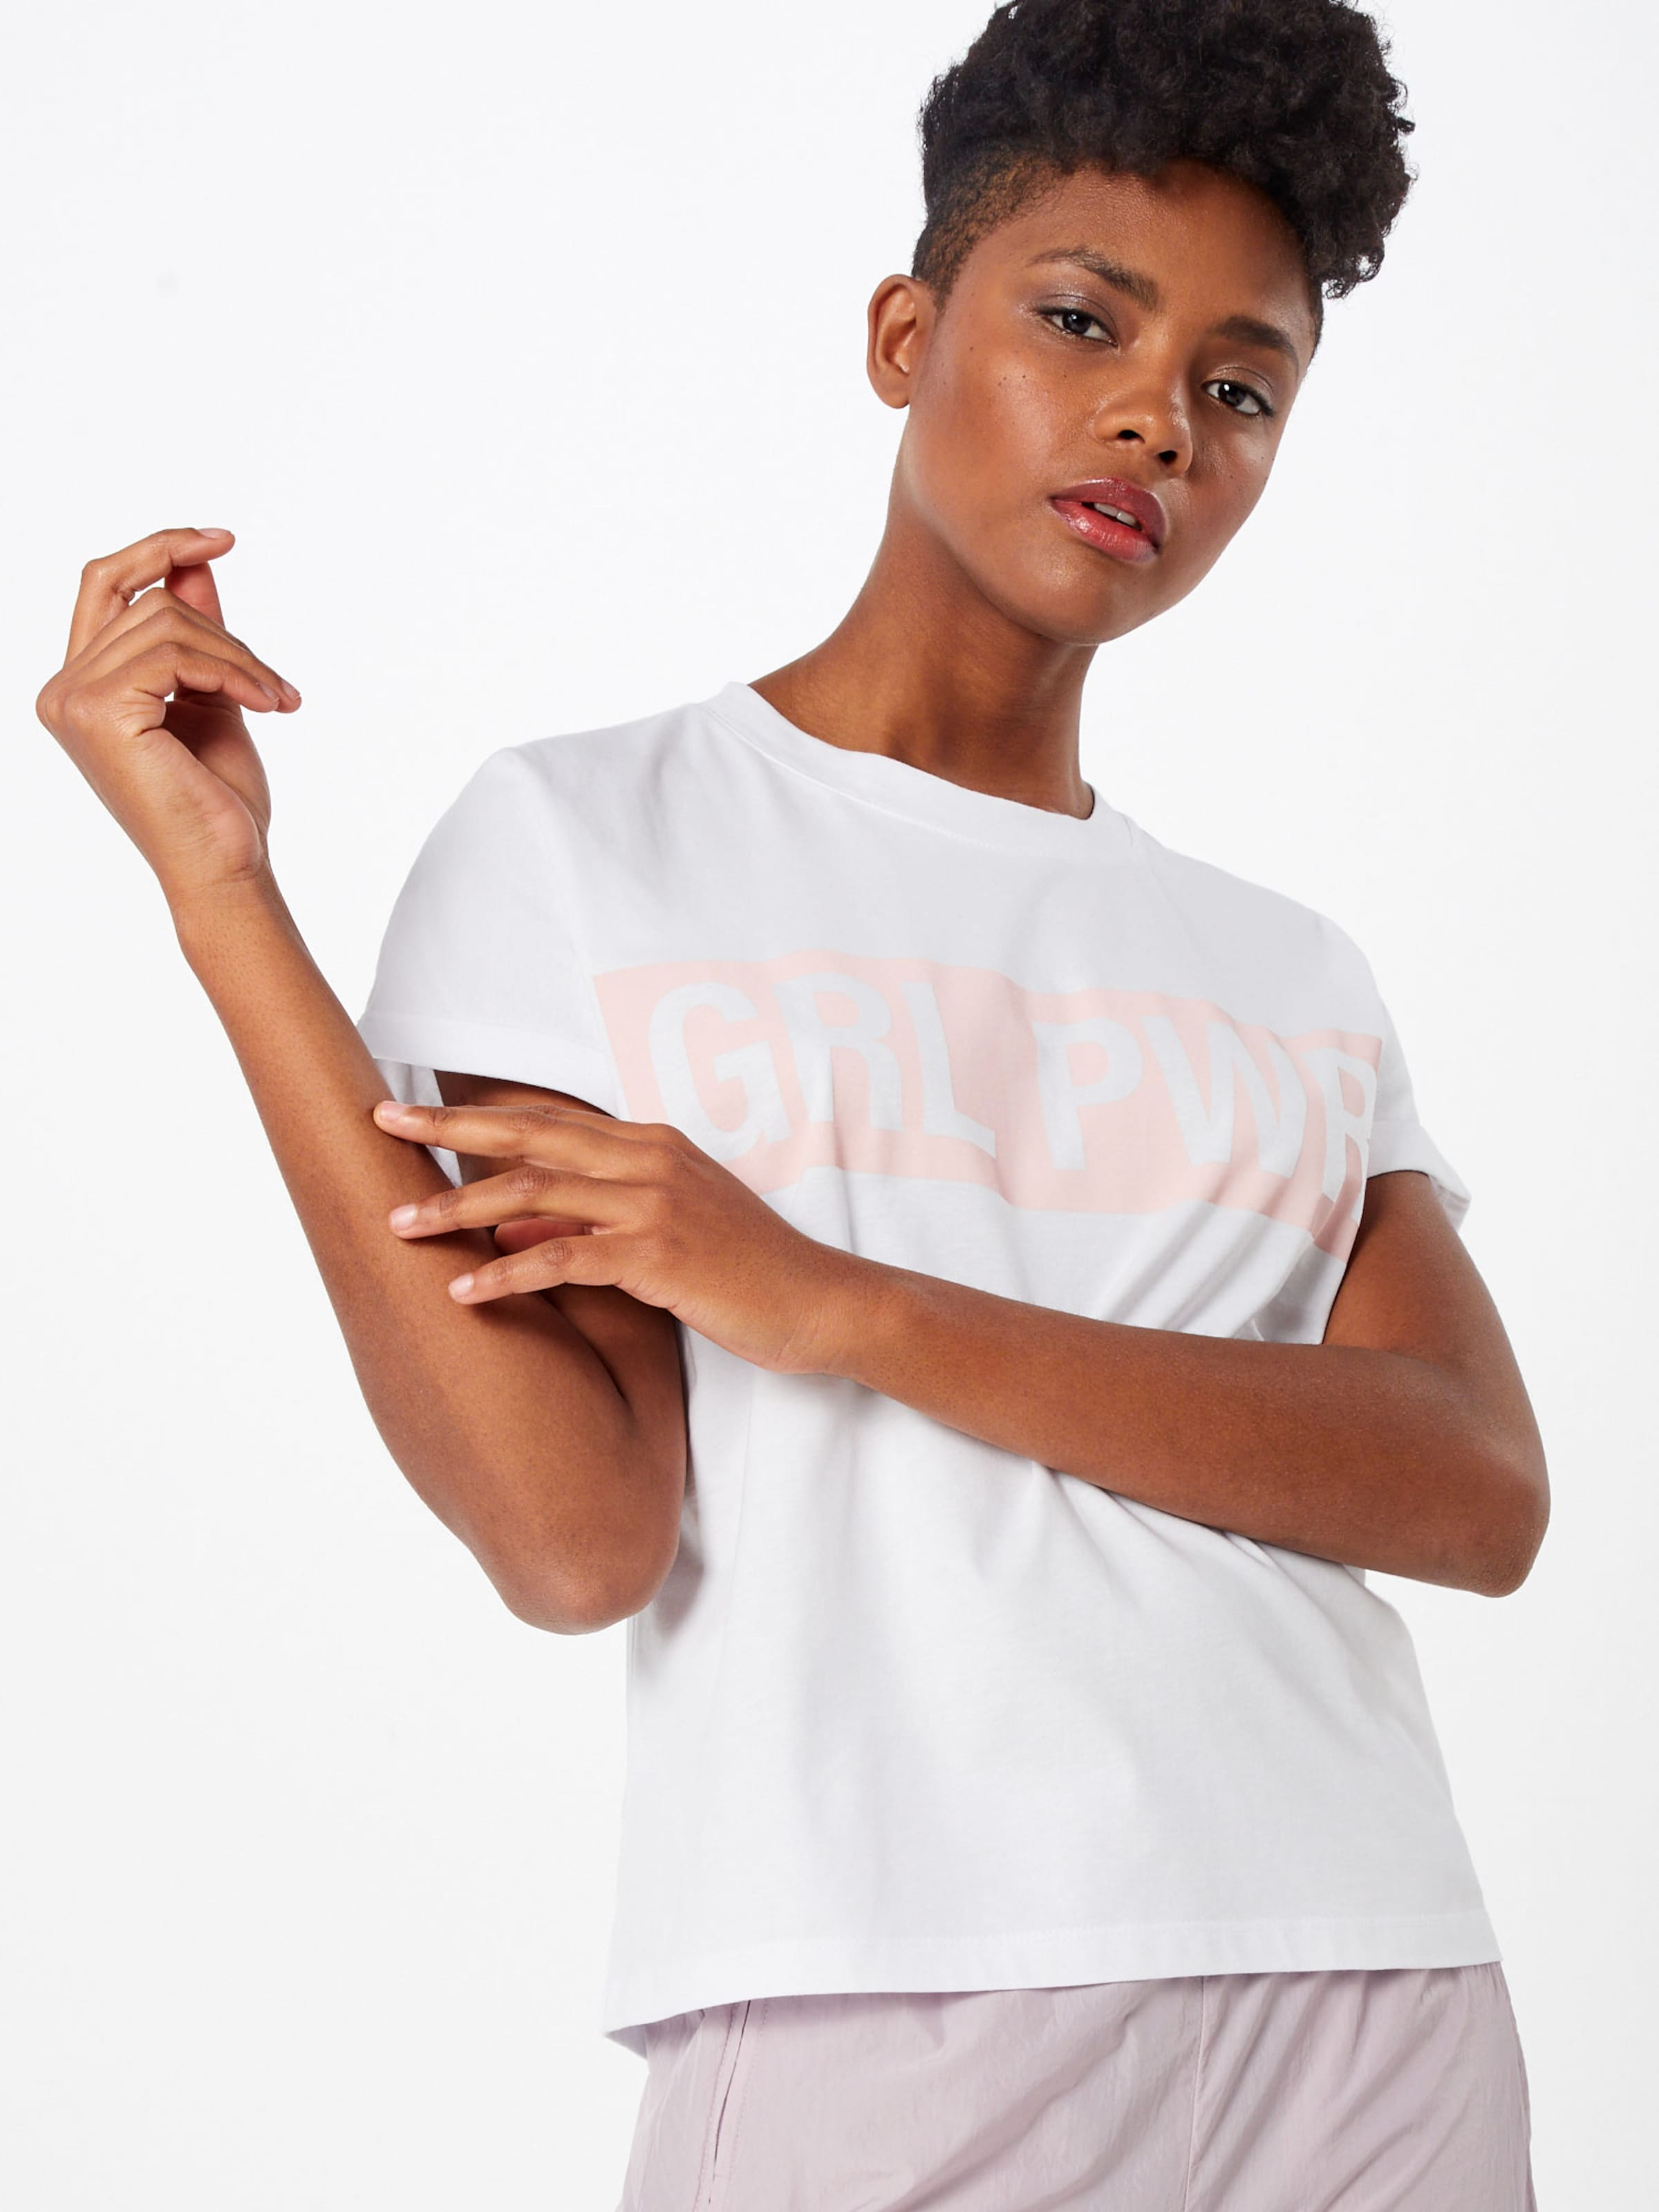 You Gris Chiné X shirt 'joleen' Grl About T Pwr En wiTXuZlOPk